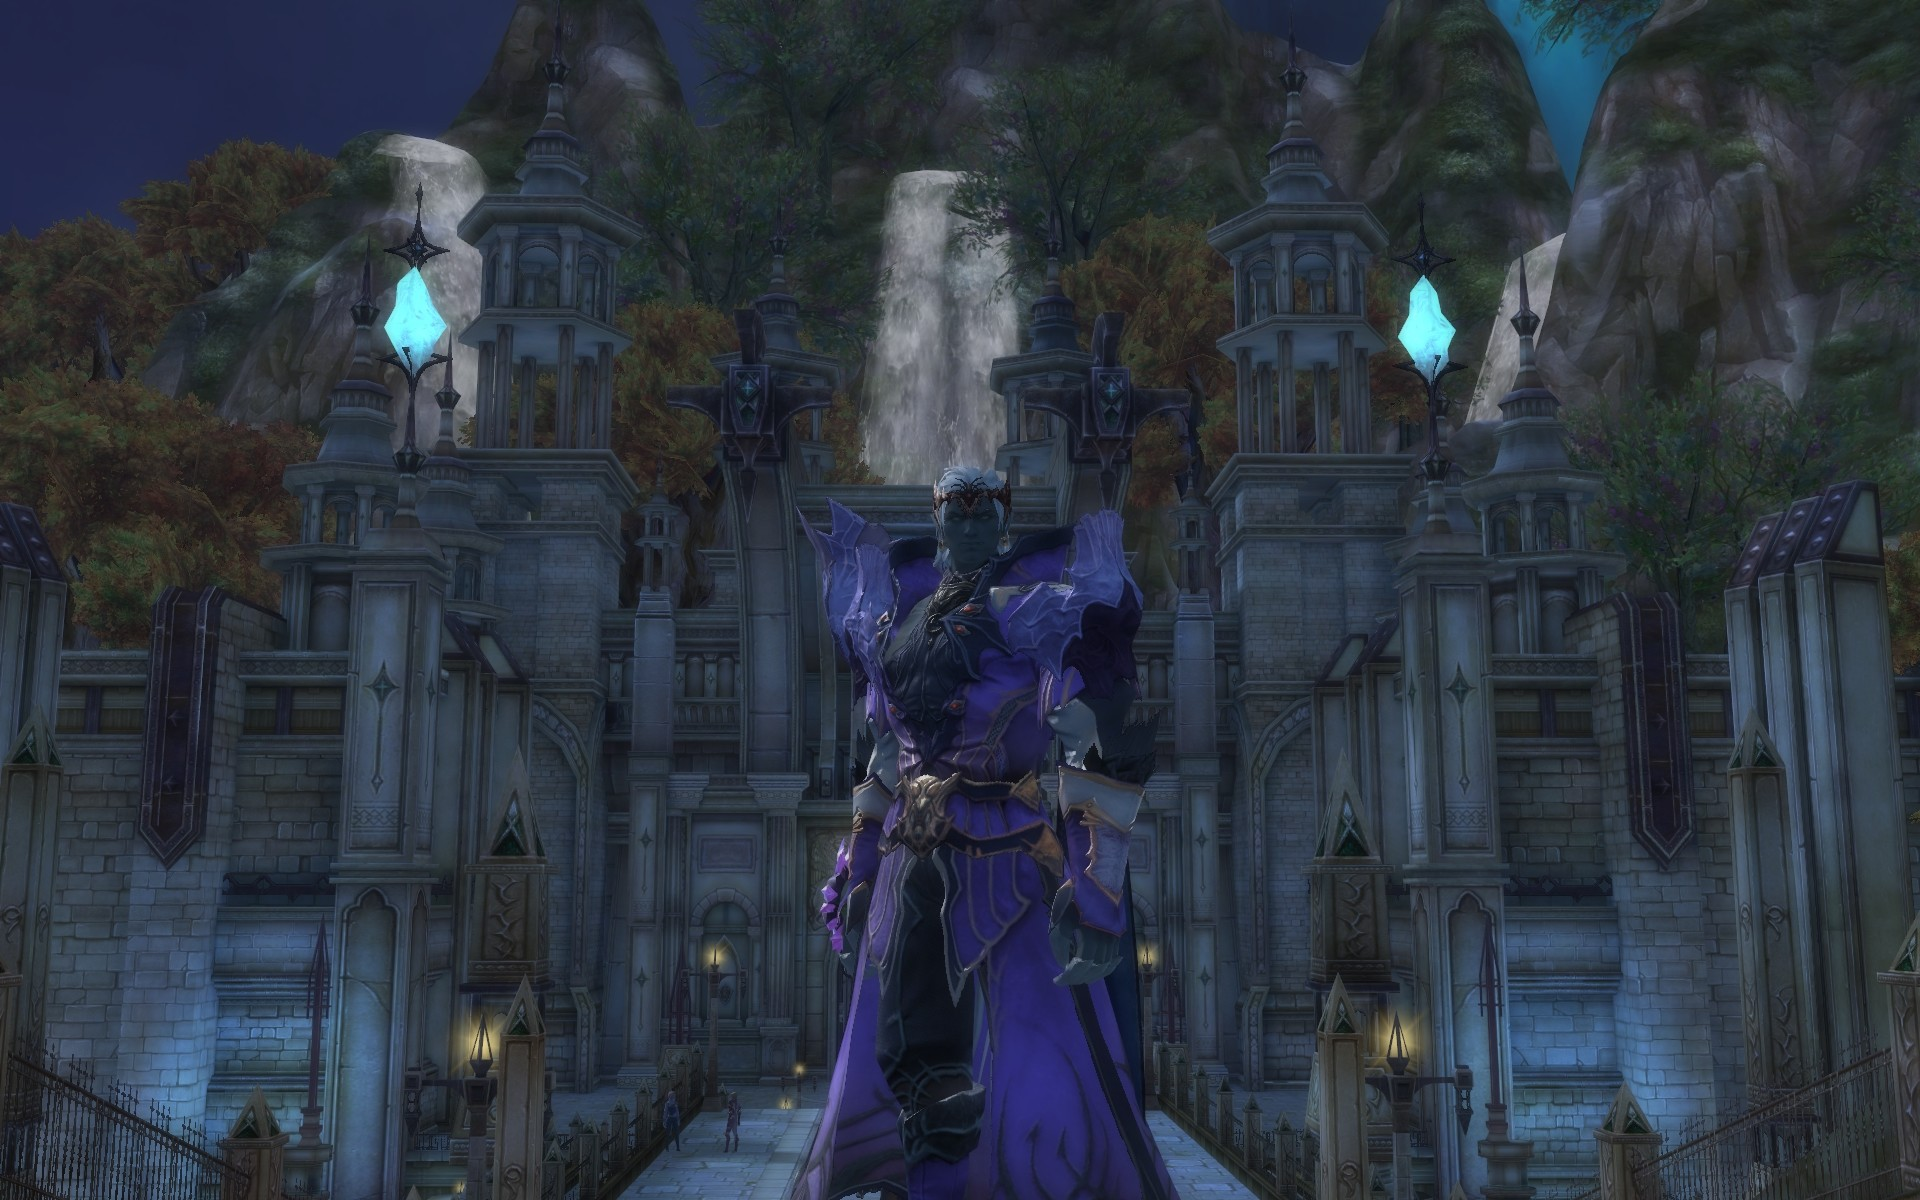 Aion - My level 40 sorcerer